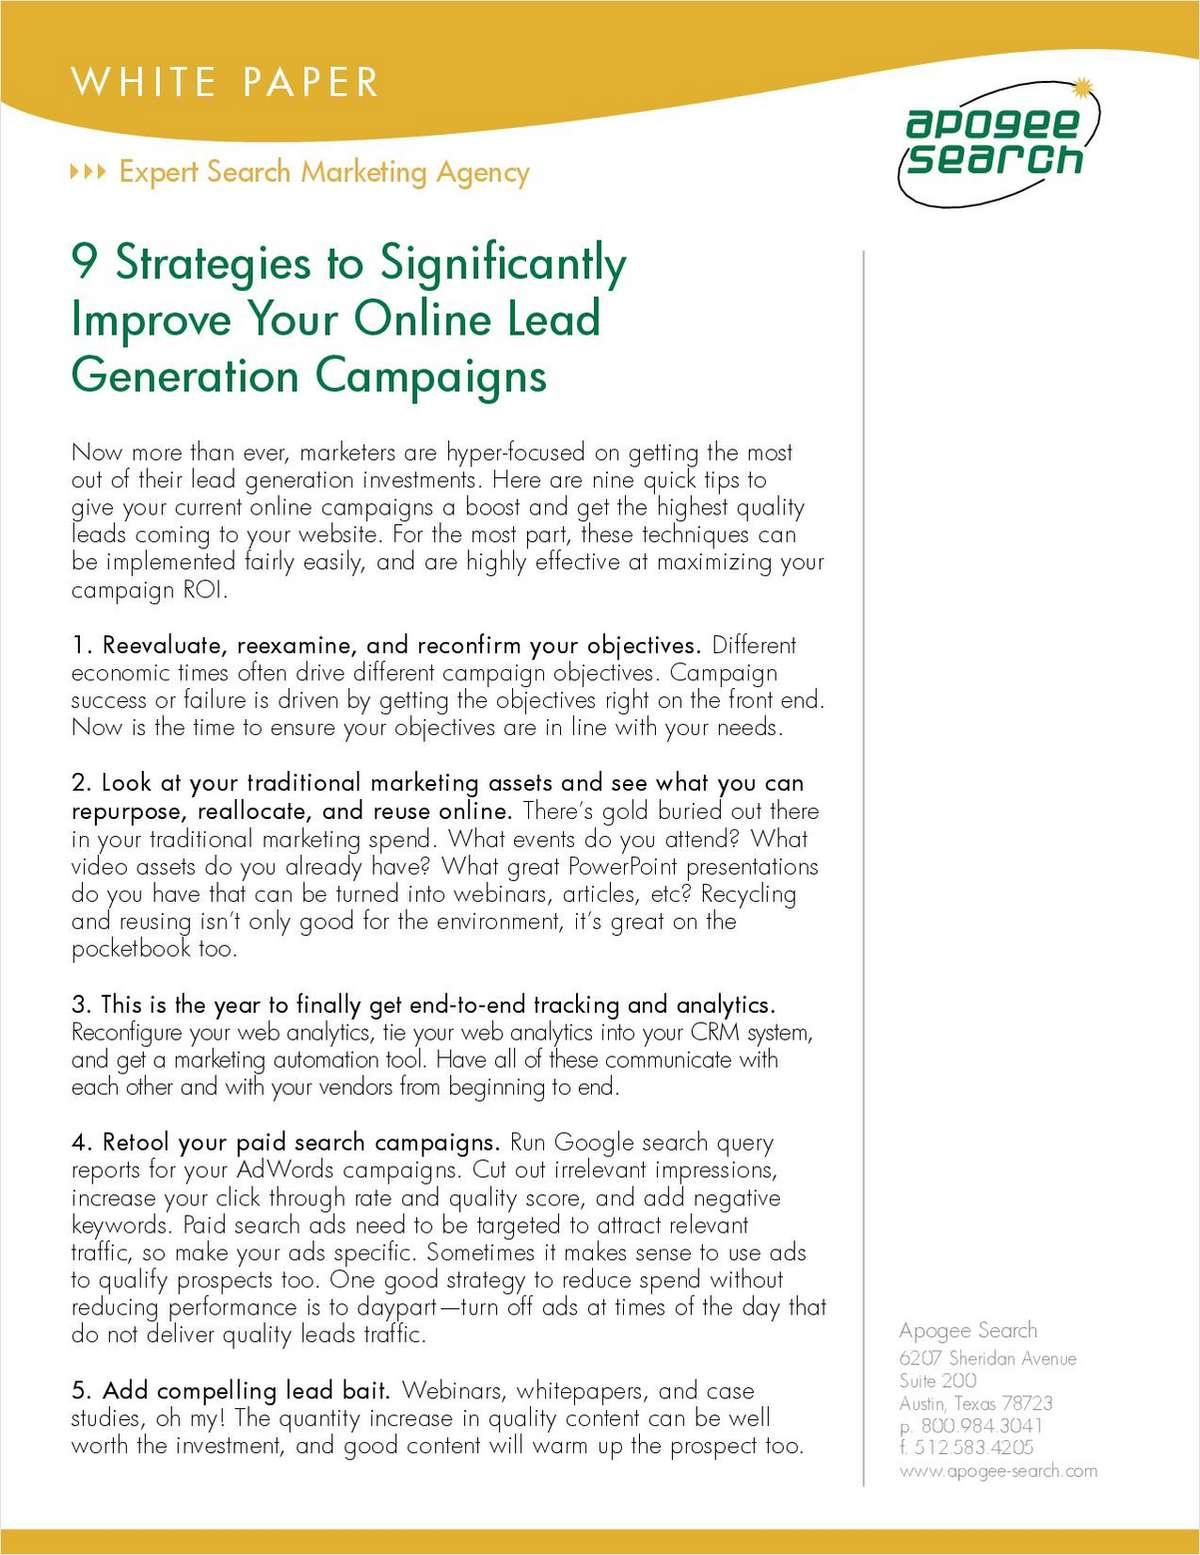 9 Strategies to Significantly Improve Your Online Lead Generation Campaigns